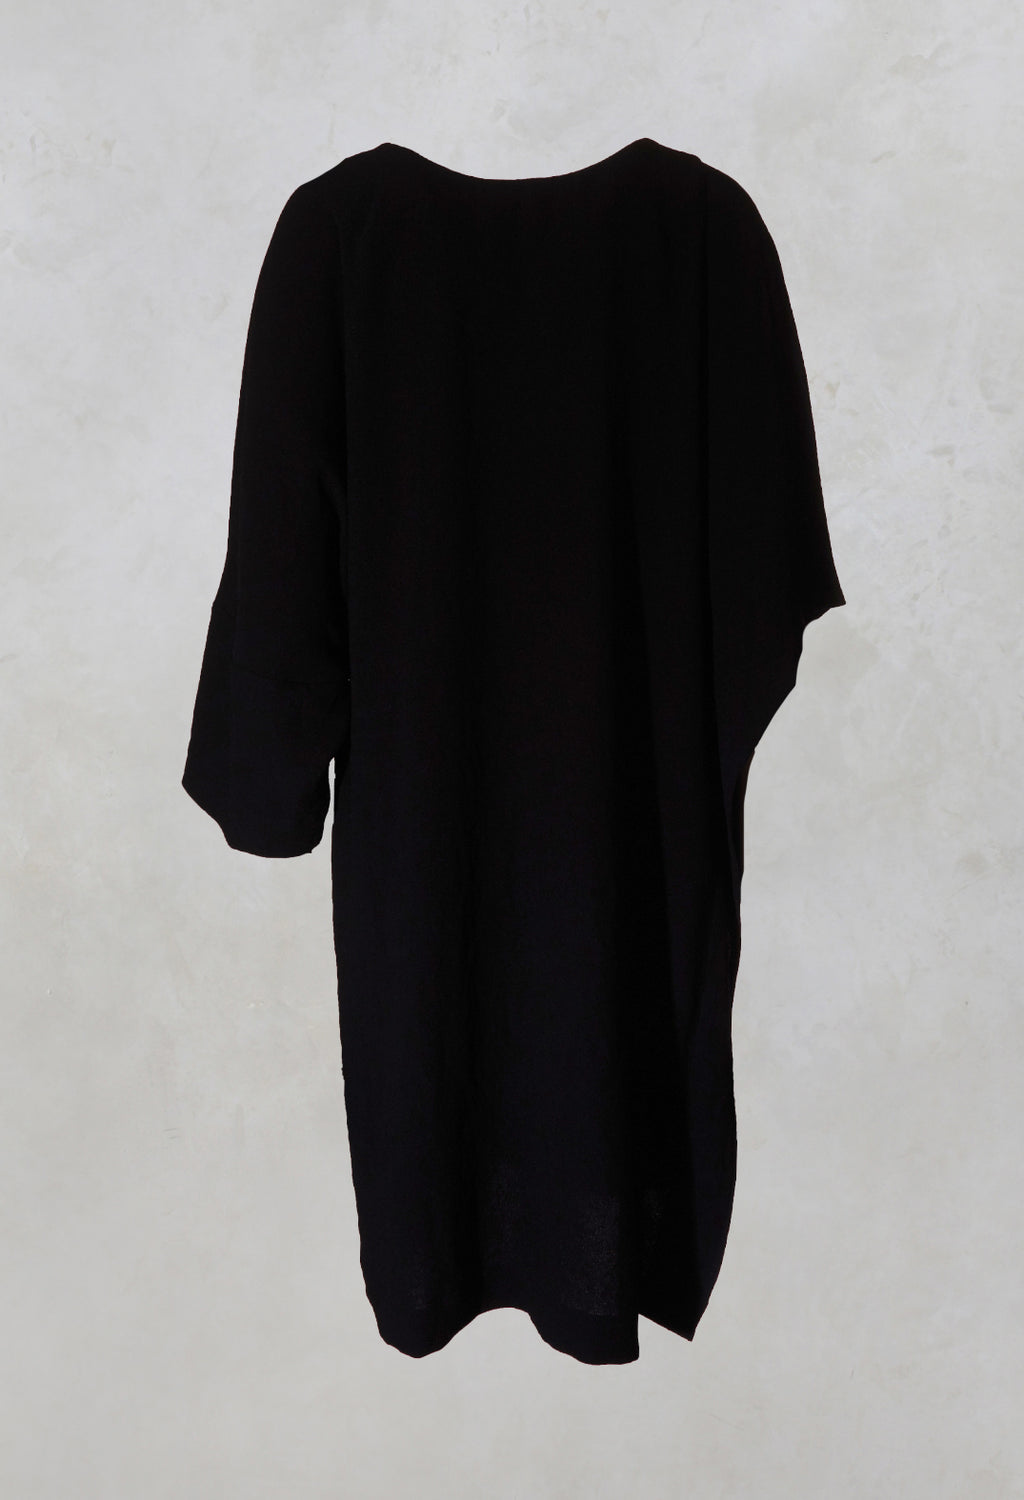 Woven Dress with Asymmetric Sleeves in Black